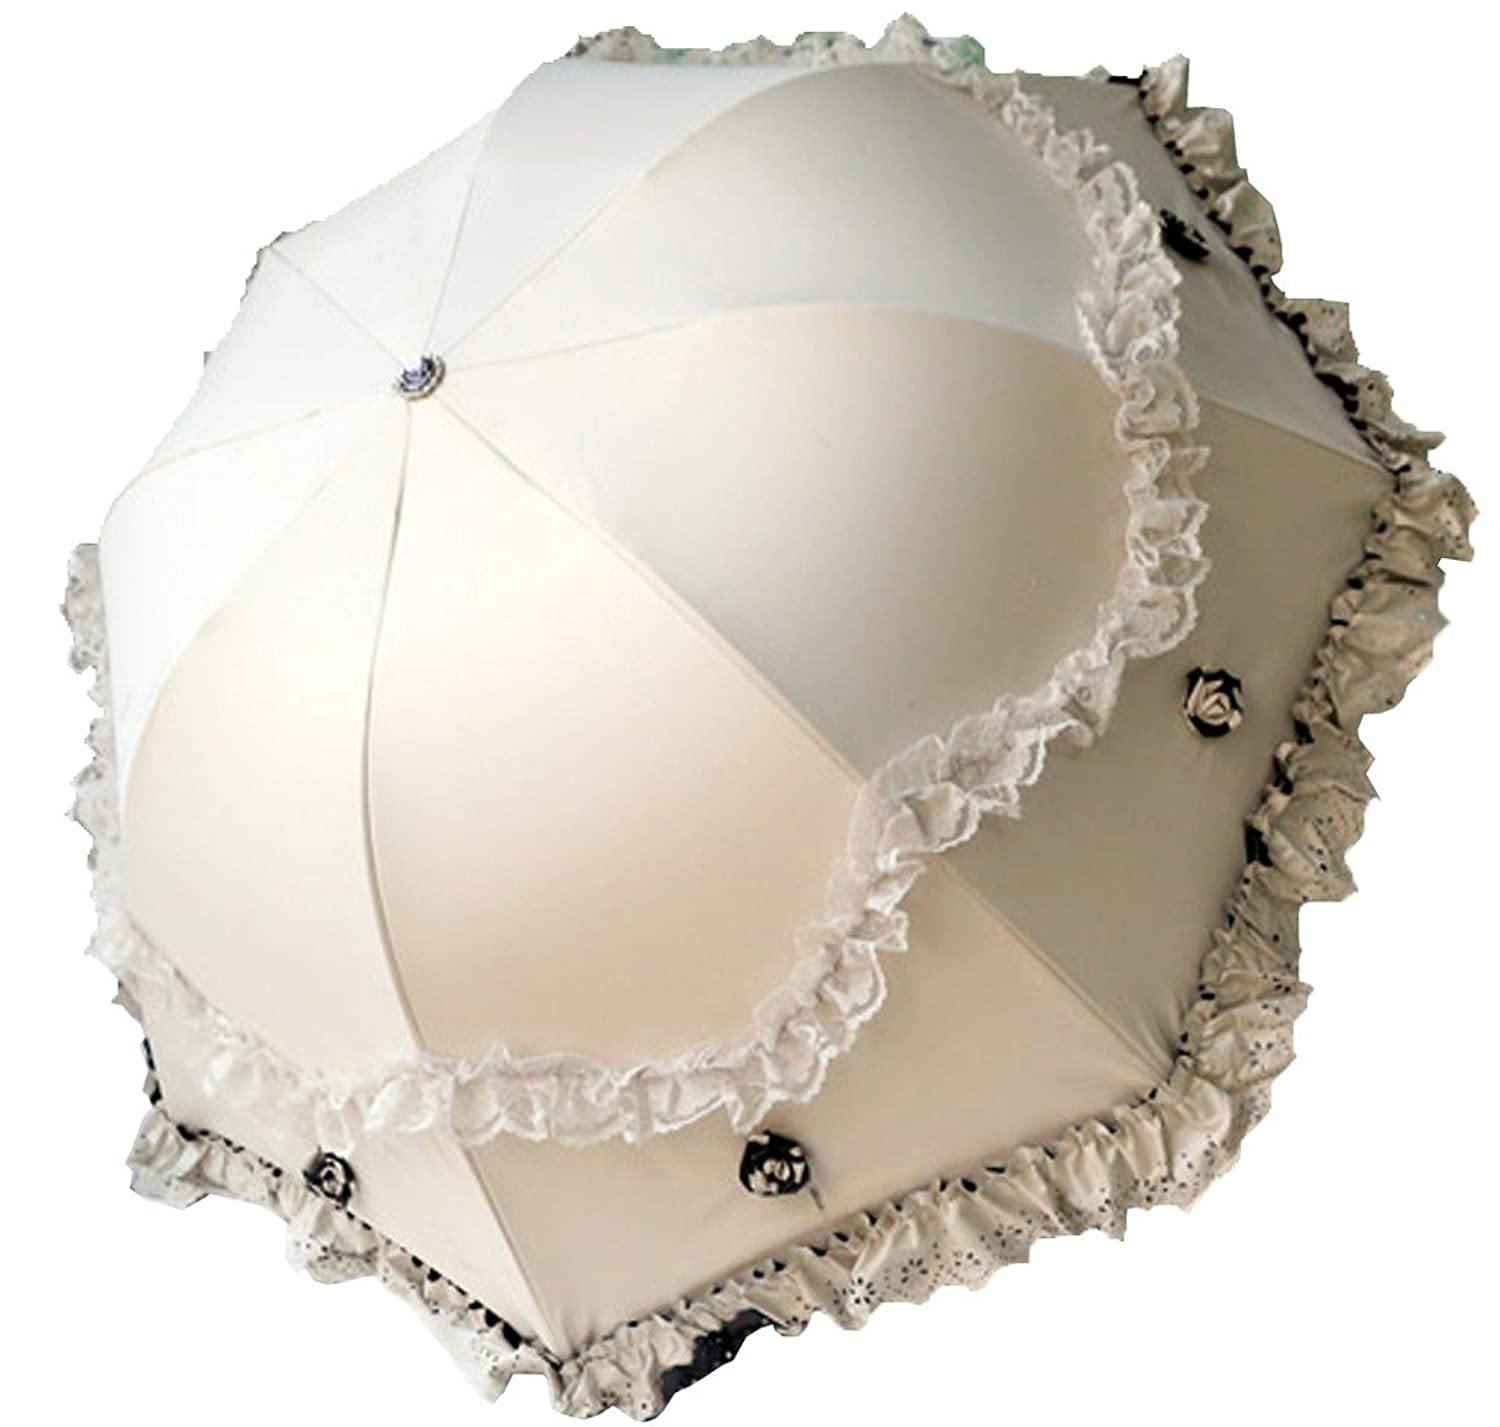 Victorian Parasols Supergirl Women Parasol Travel Compact Lace Sunshade Anti-UV Windproof Rain Umbrella $28.99 AT vintagedancer.com